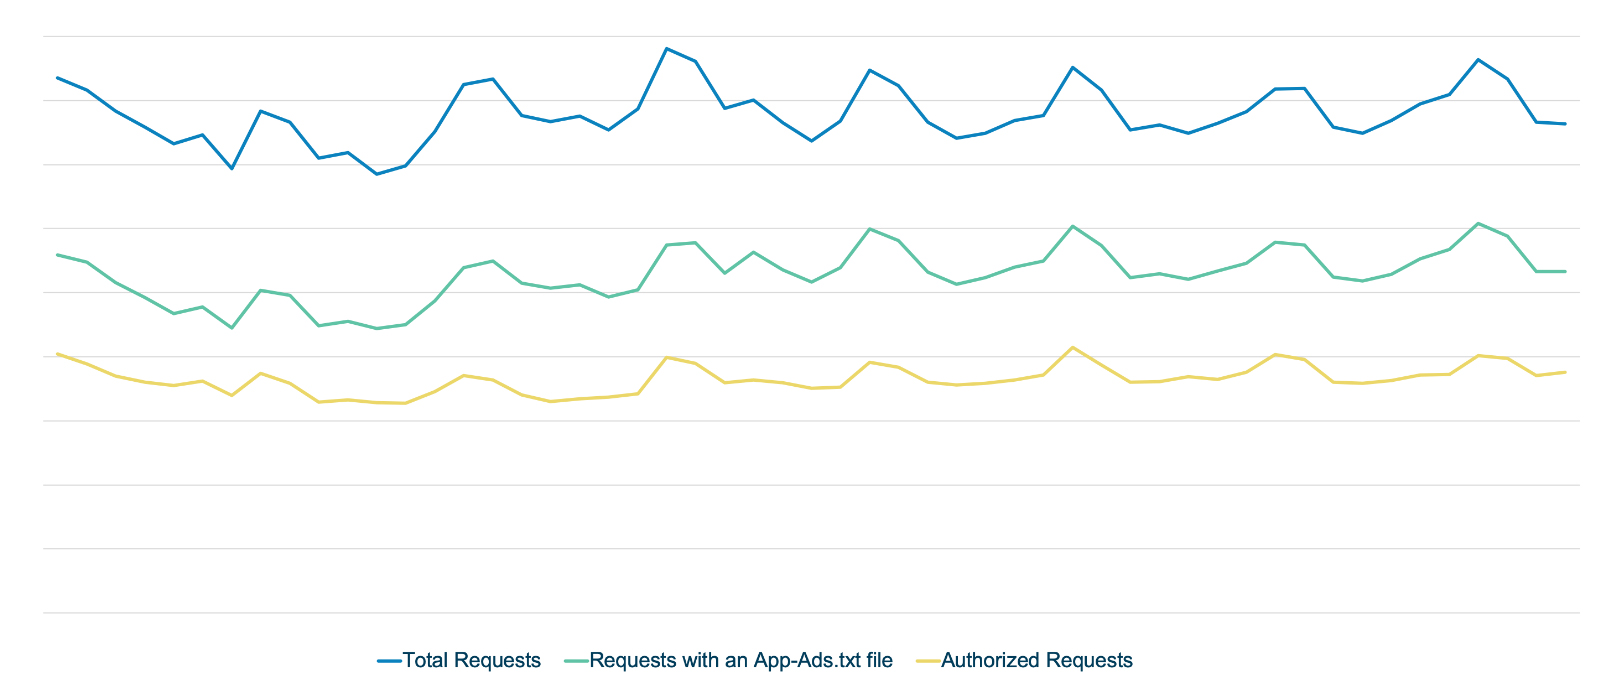 Figure 1: Daily distribution of requests from publishers with app-ads.txt implemented including authorized requests.